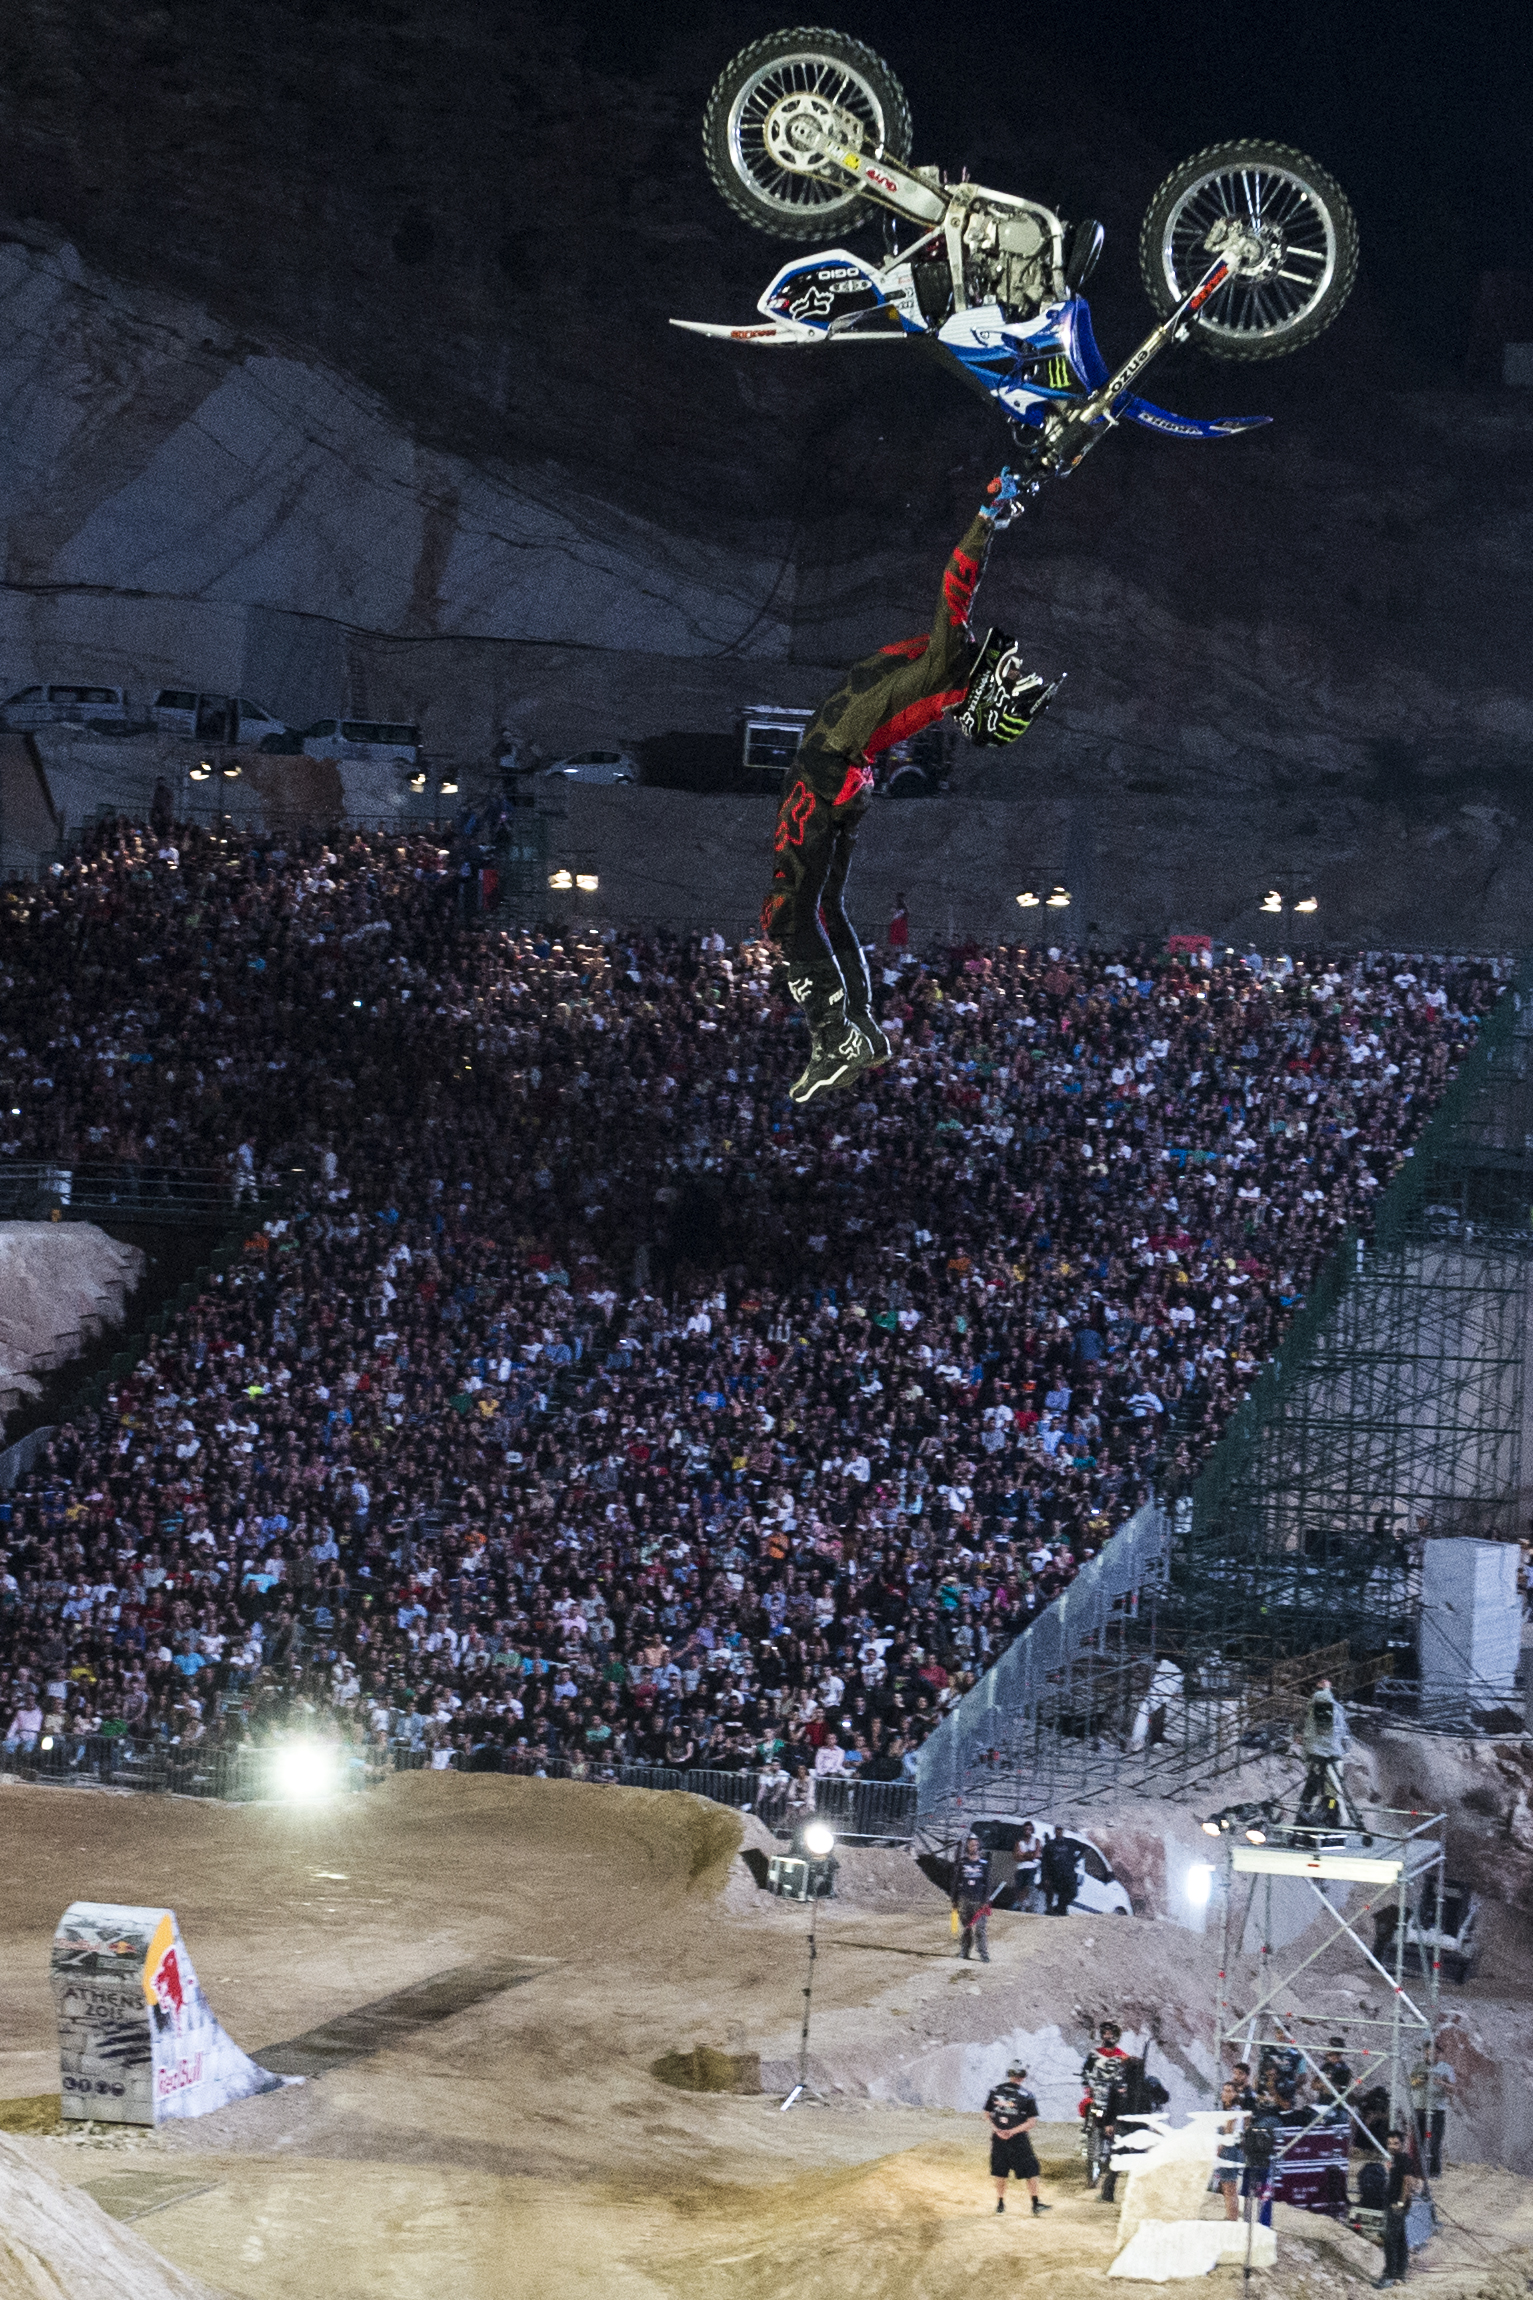 red bull x fighters athens results and rider quotes fmx lw mag. Black Bedroom Furniture Sets. Home Design Ideas